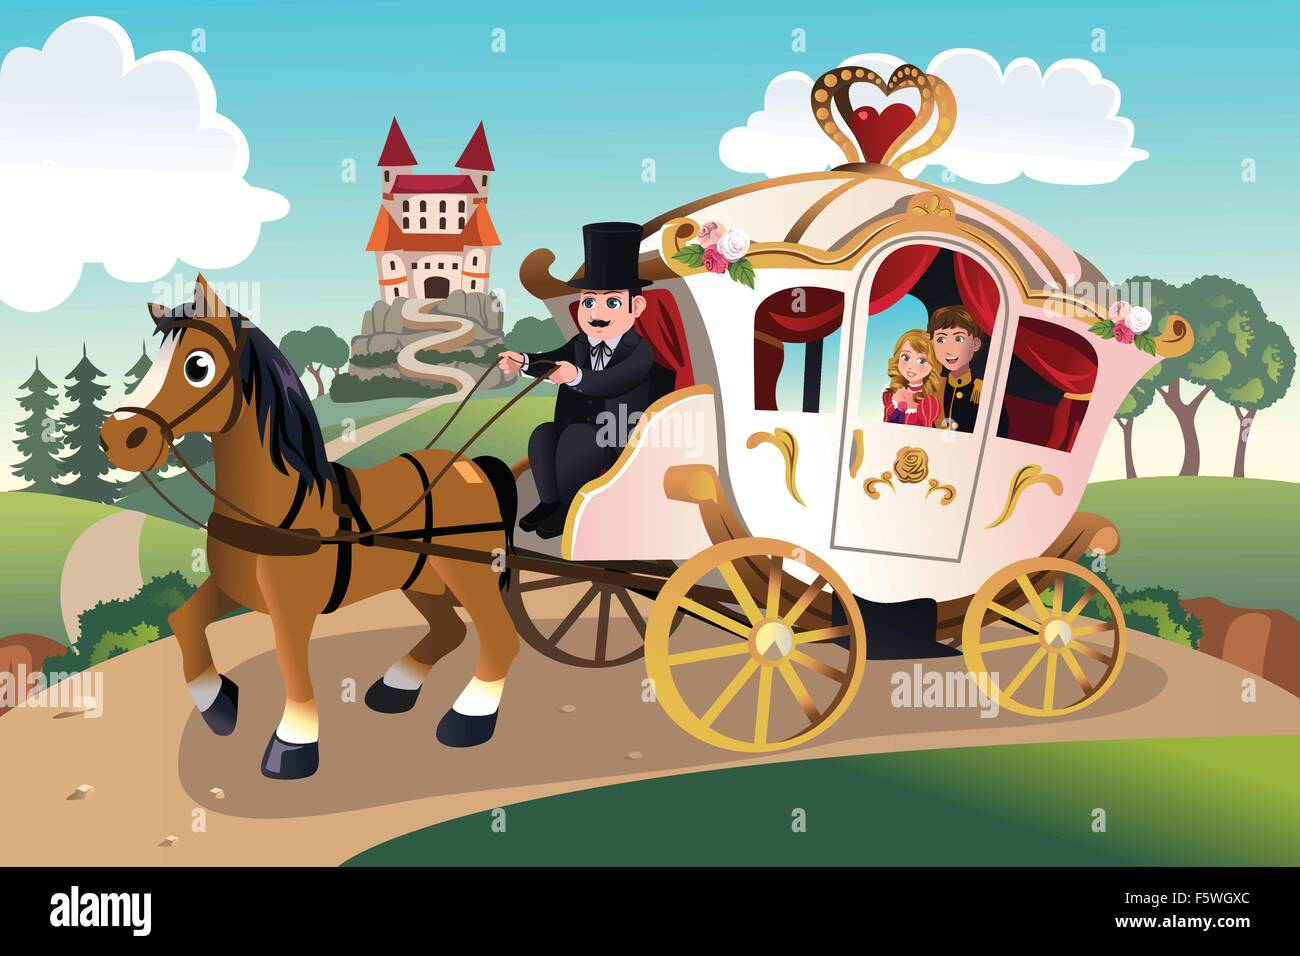 A vector illustration of prince and princess in a horse pulled wagon - Stock Image